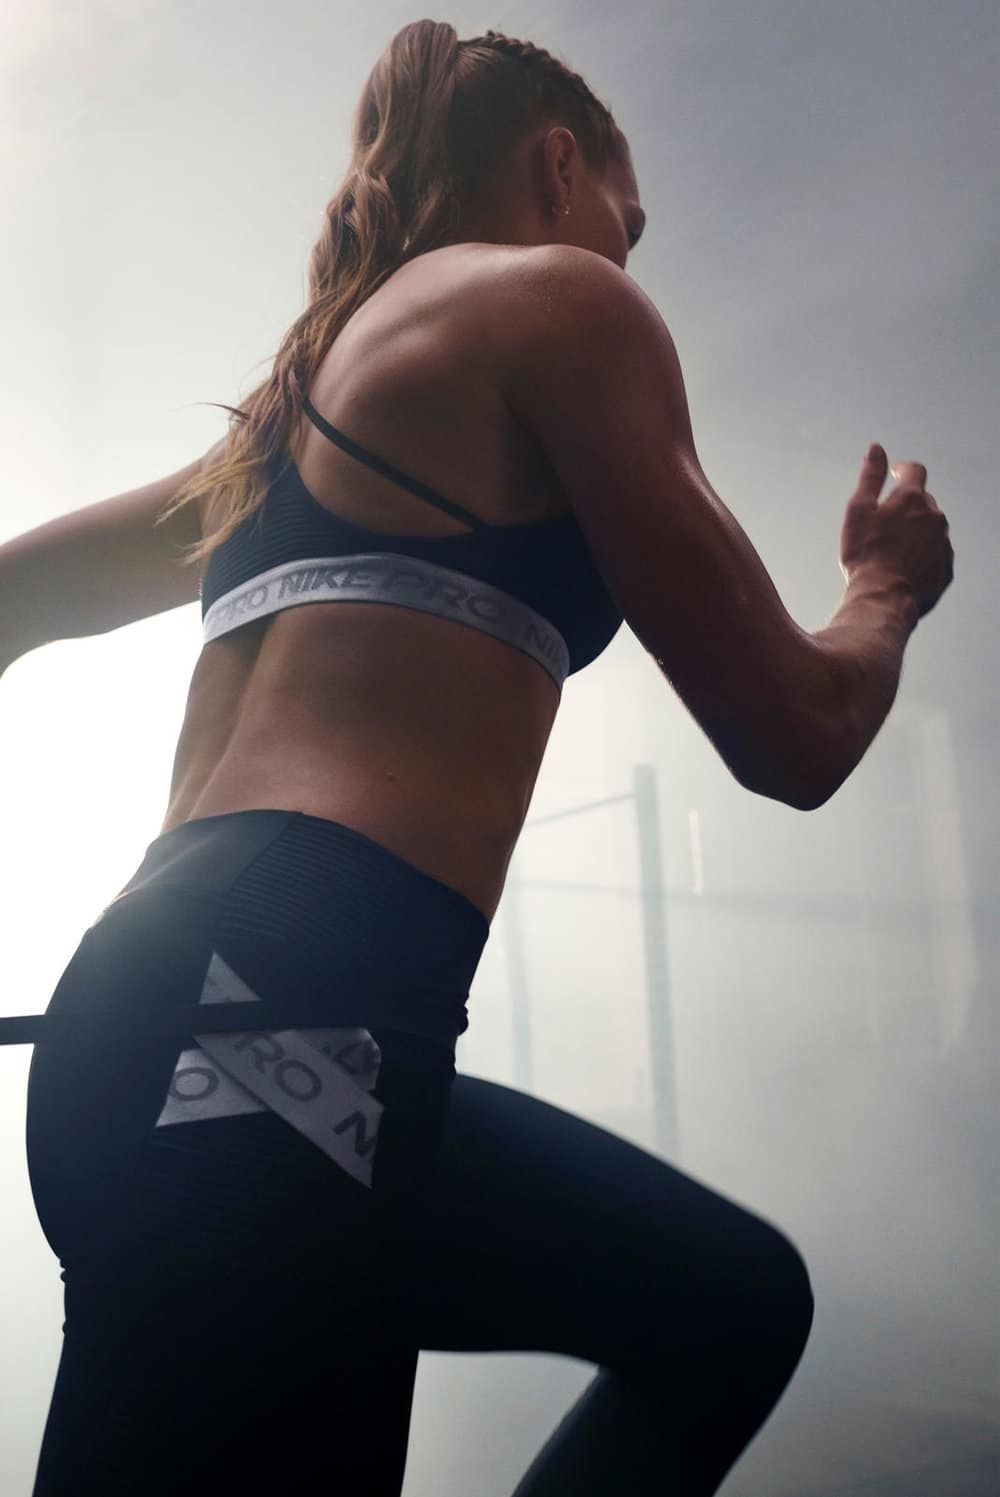 The strappy design of the Nike Pro AeroAdapt Sports Bra has sweat-activated ventilation to keep you comfortable in your transitions from strength movements to cardio.